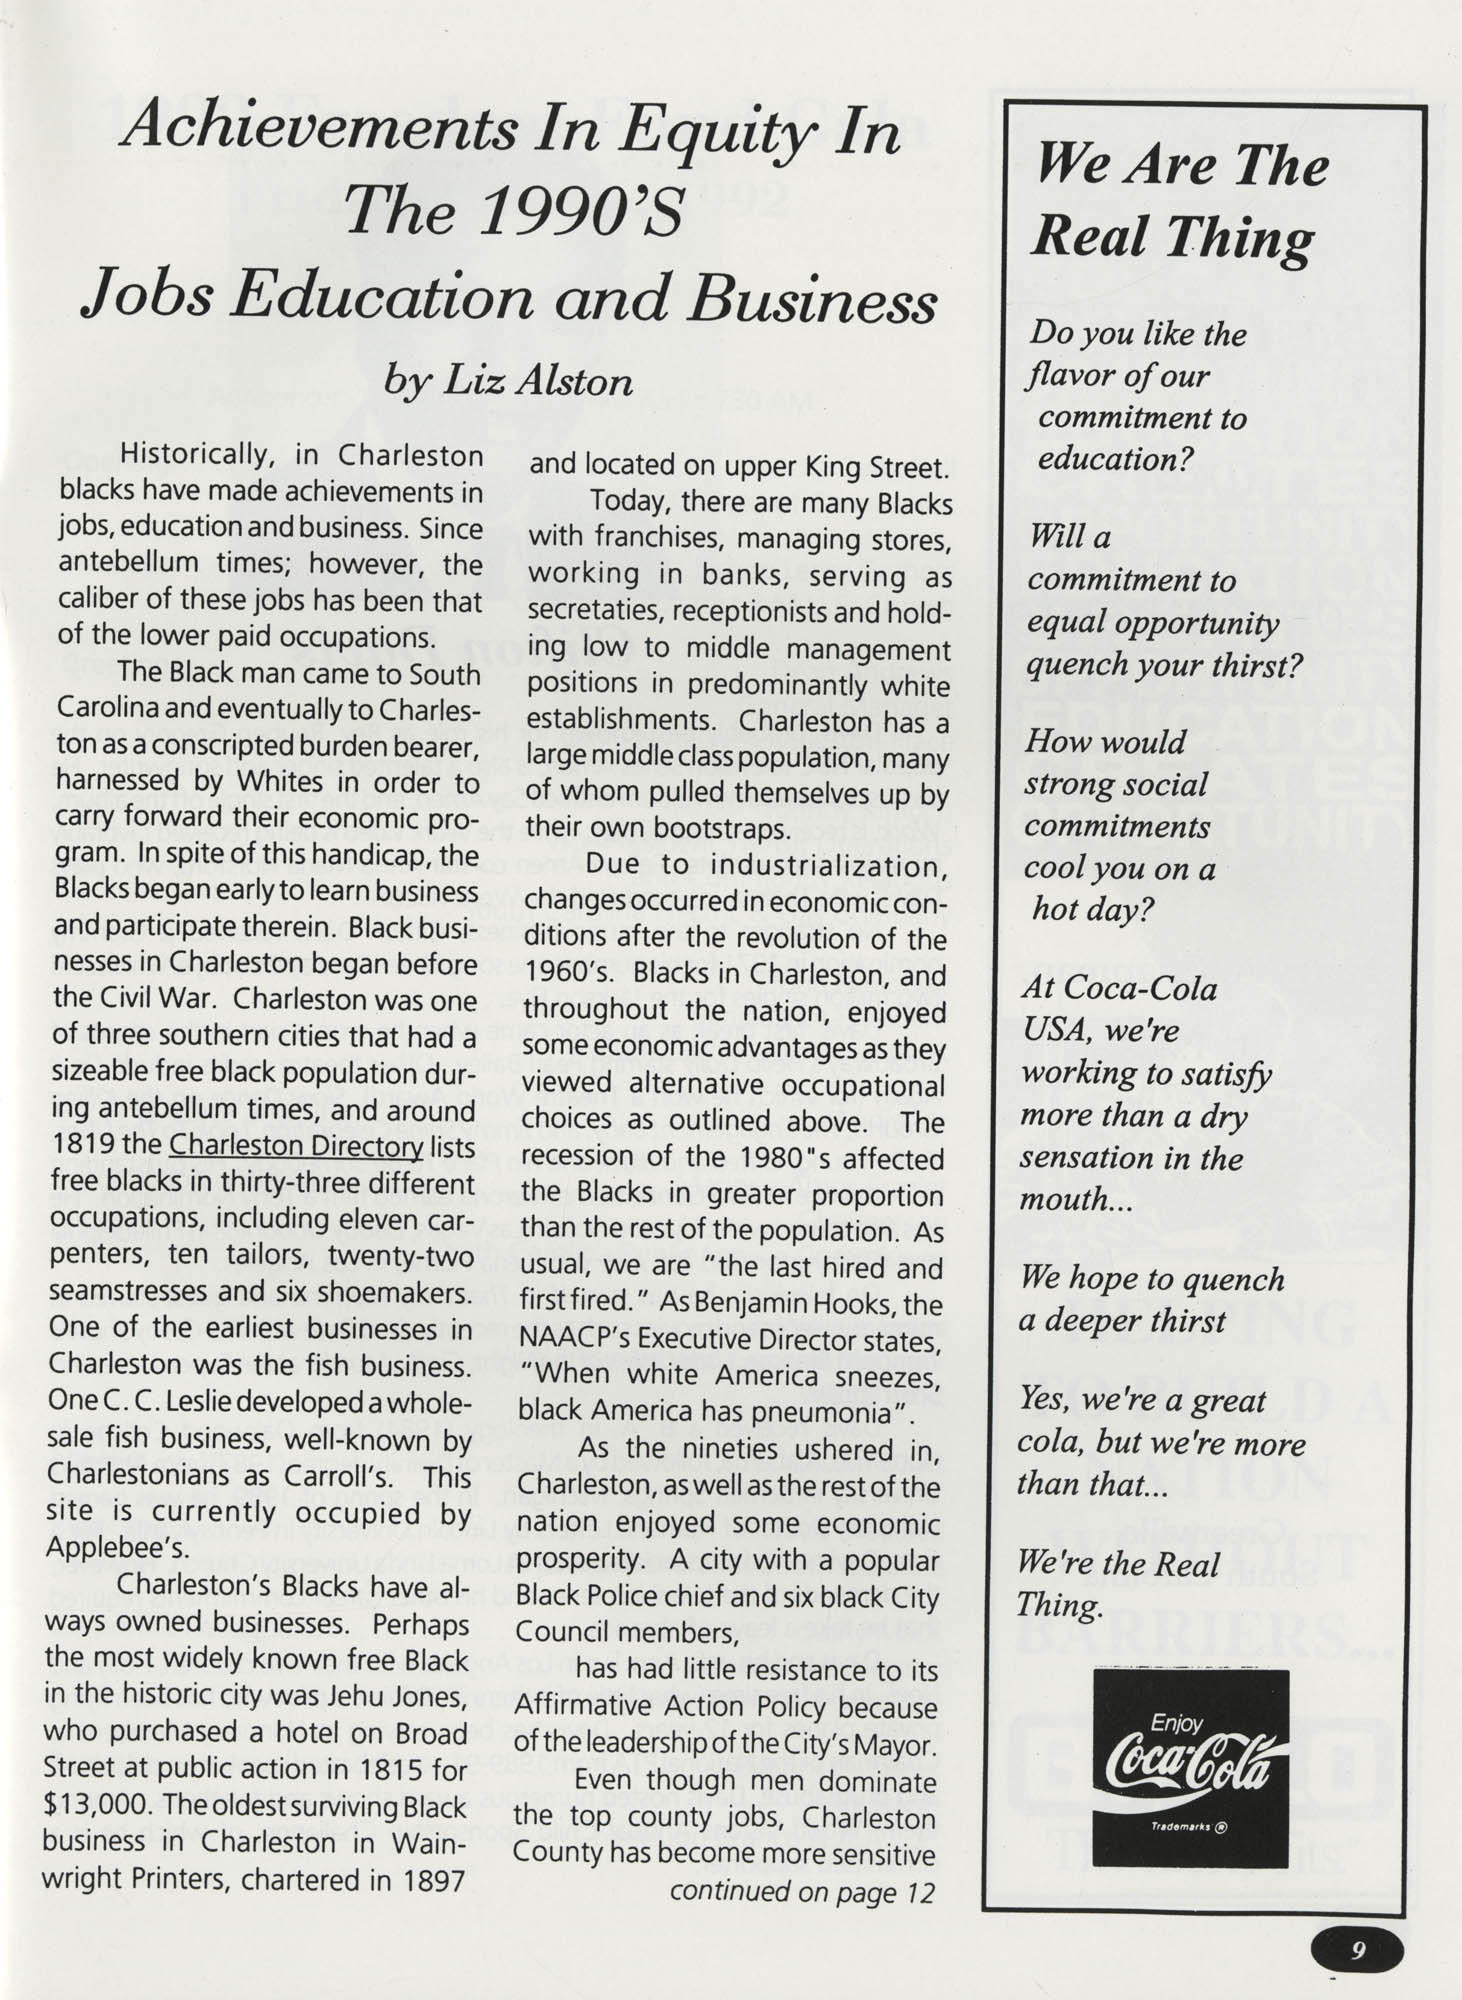 Freedom Fund Magazine, 1992, Page 9